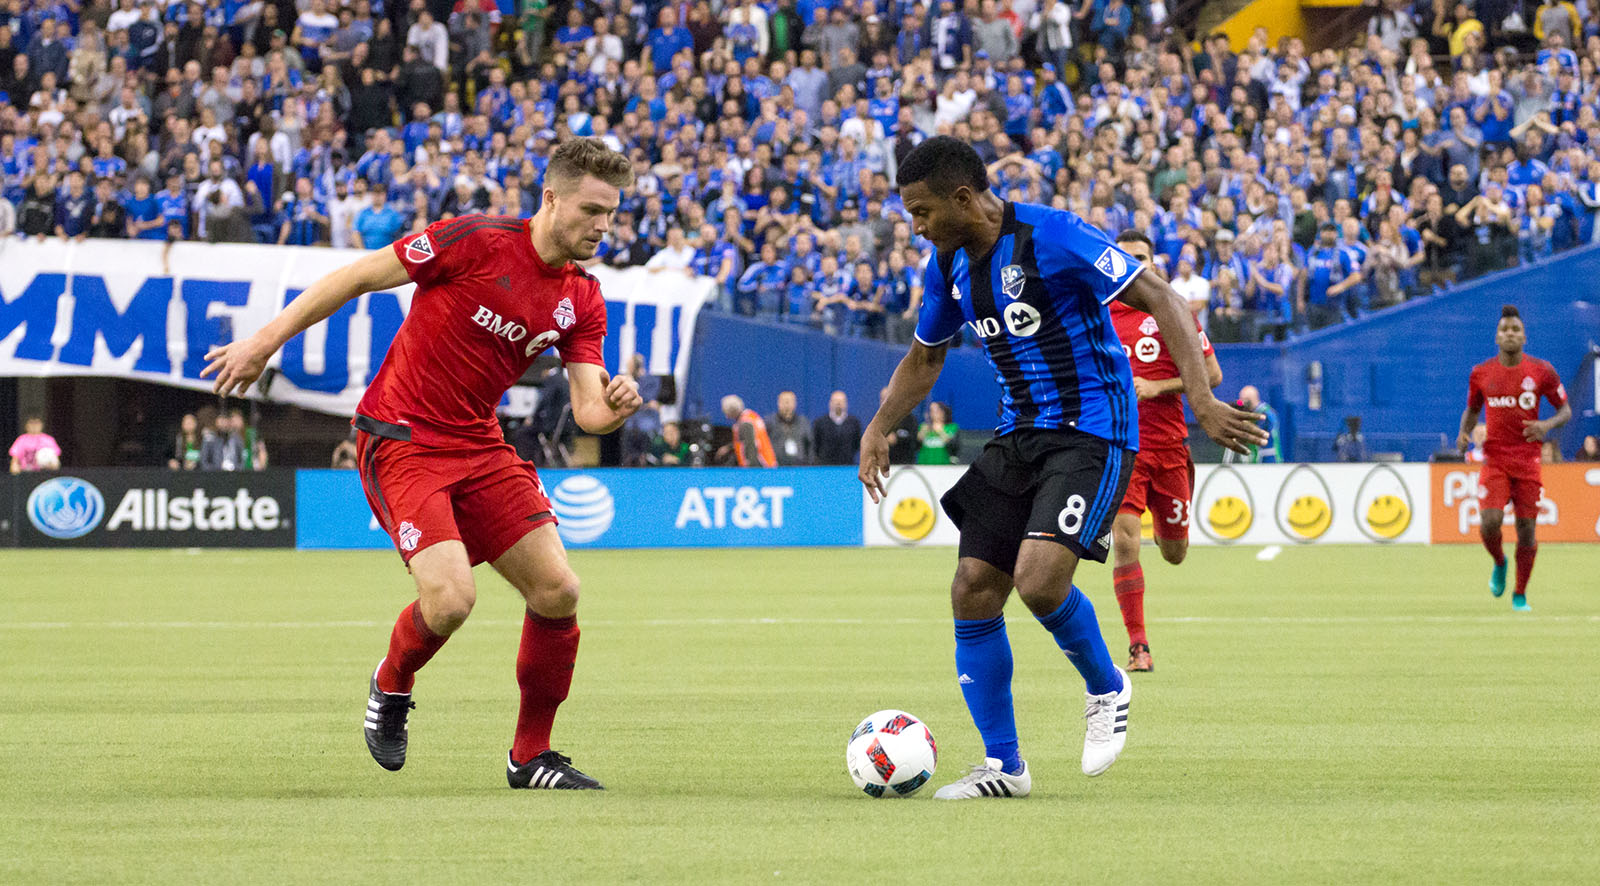 The reds try to hold off Montreal's offensive pressure during the first half. Image by Dennis Marciniak of denMAR Media.